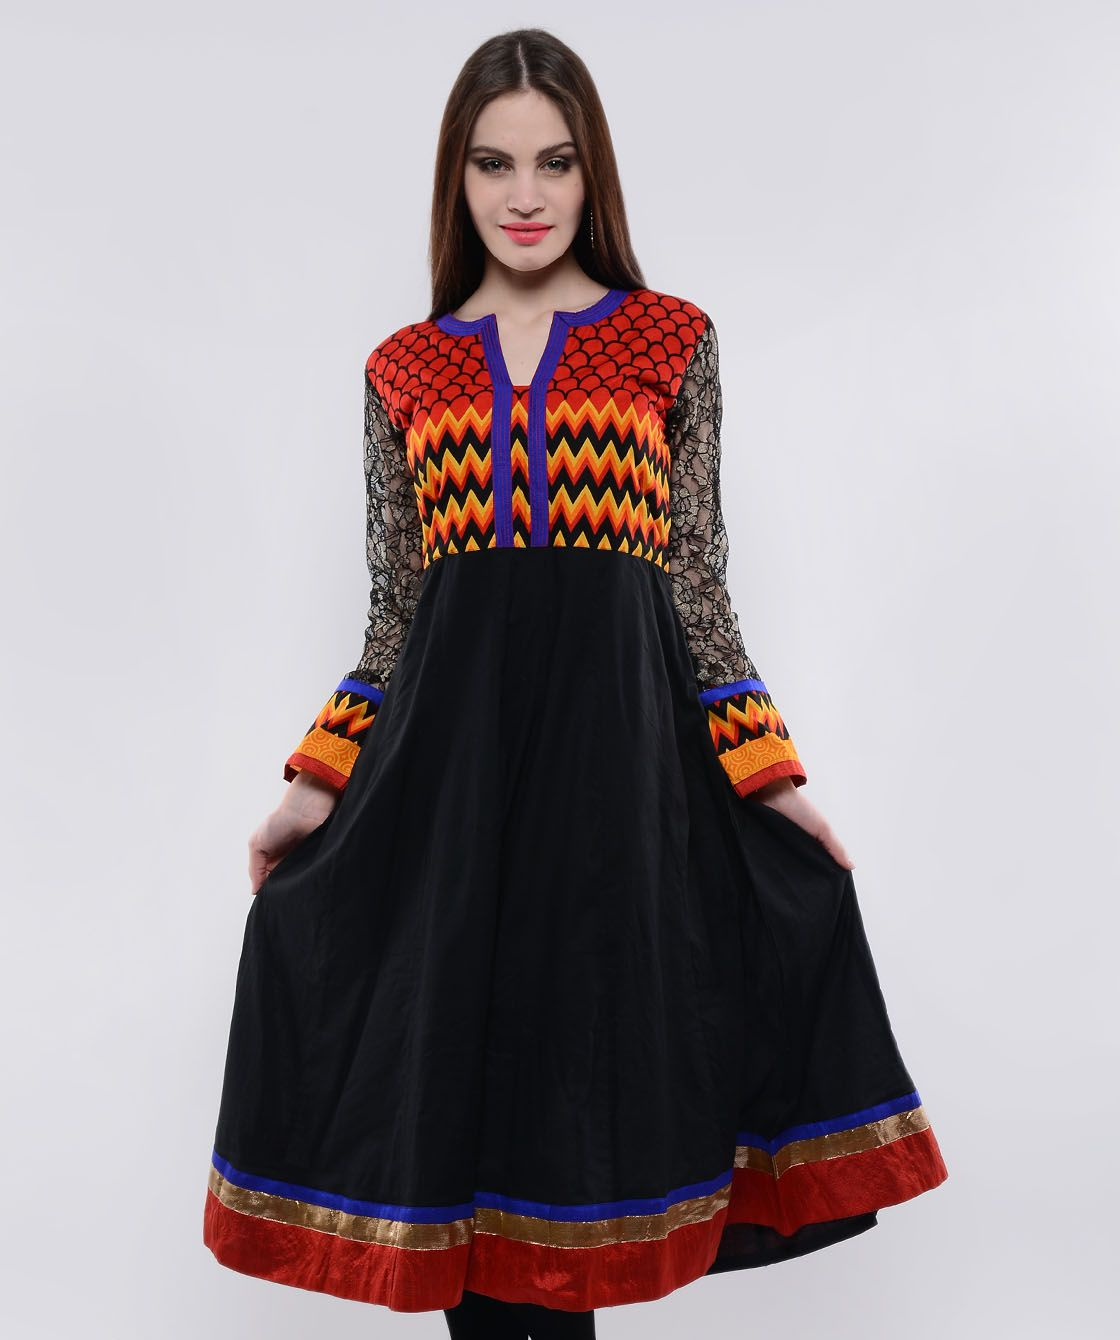 It's time for a stimulating and trendy change for your closet! Amaze yourself with a sophisticated and elegant avatar with this startling collection of gorgeously designed kurtas and kurtis. Unveiling shades, flairs and several fits, the range has the whole package to reinvent style in its best form. So flaunt a refreshing new look today! BRAND: NavvyyaCATEGORY: KurtaCOLOUR: Black and MultiMATERIAL: Cotton & Poly NetSIZE: This product conforms to standard brand sizing. For your shopping ...